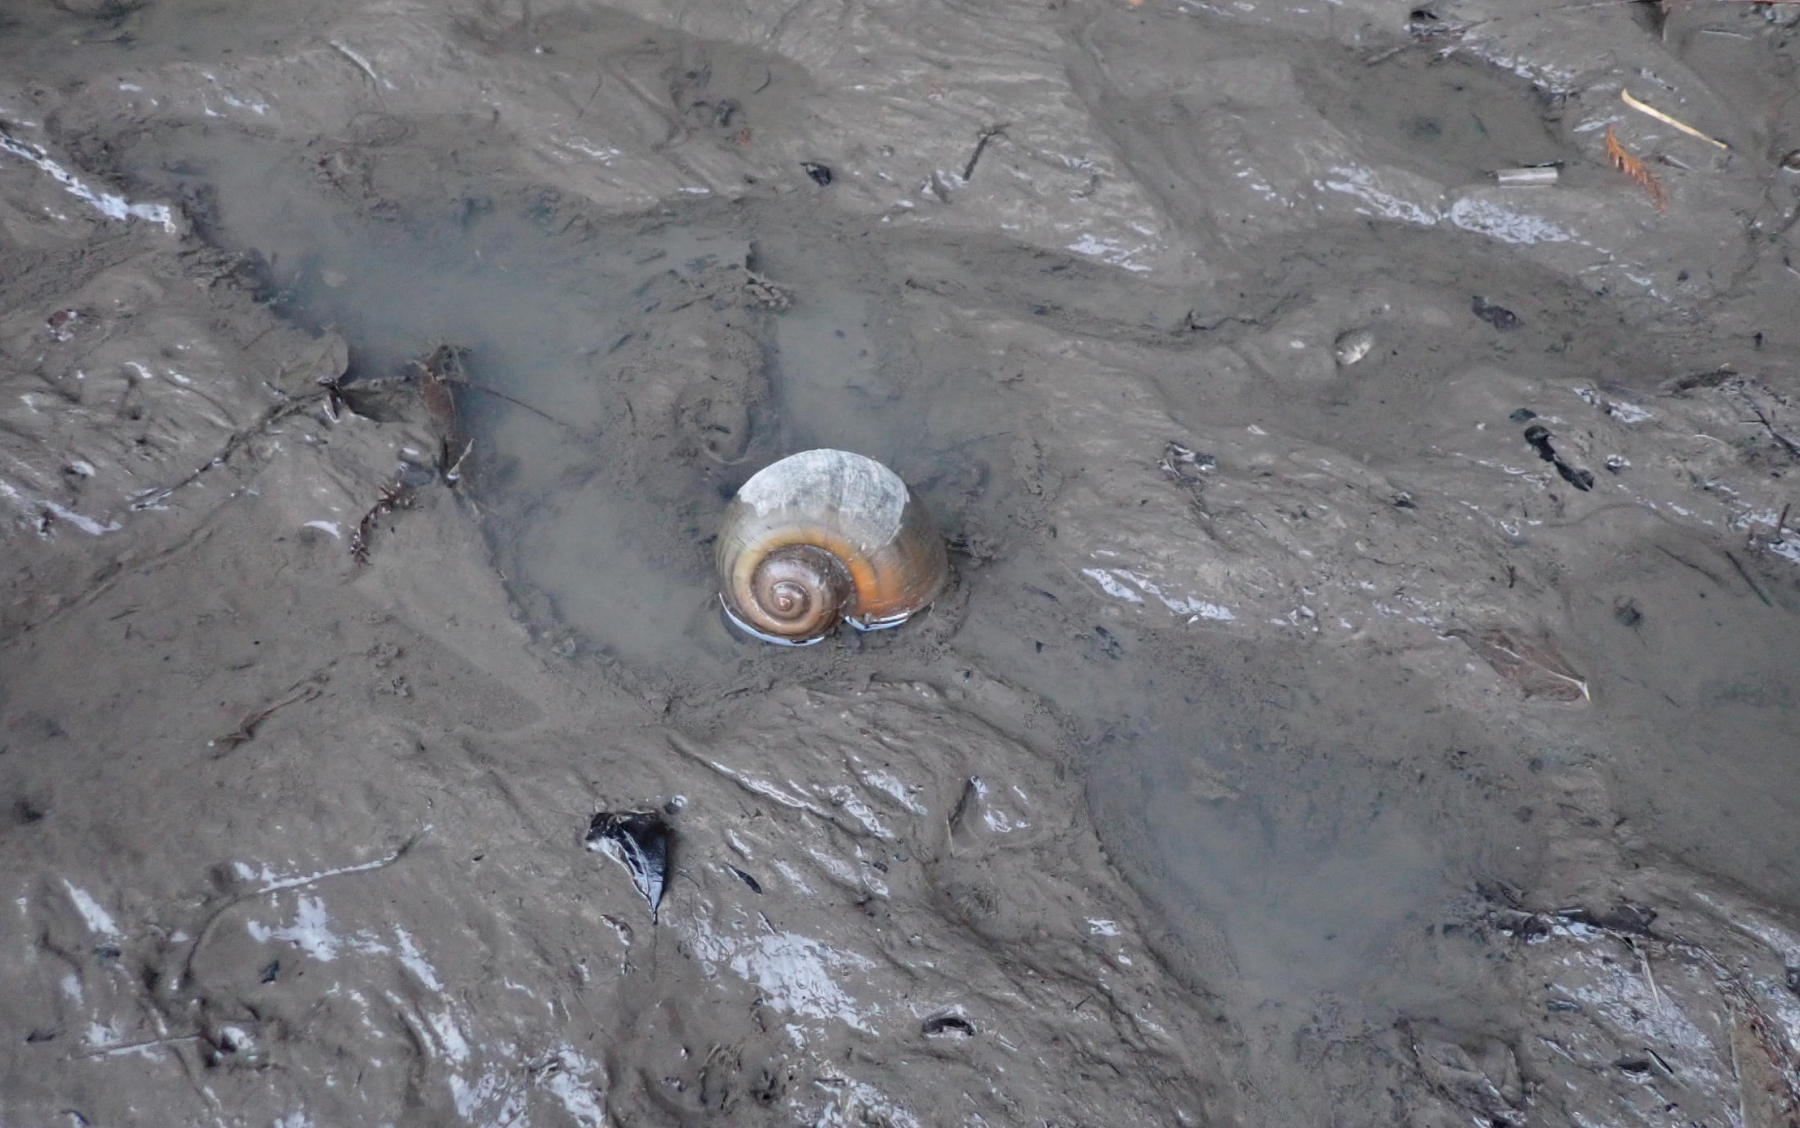 Snail moving across beach or mud.